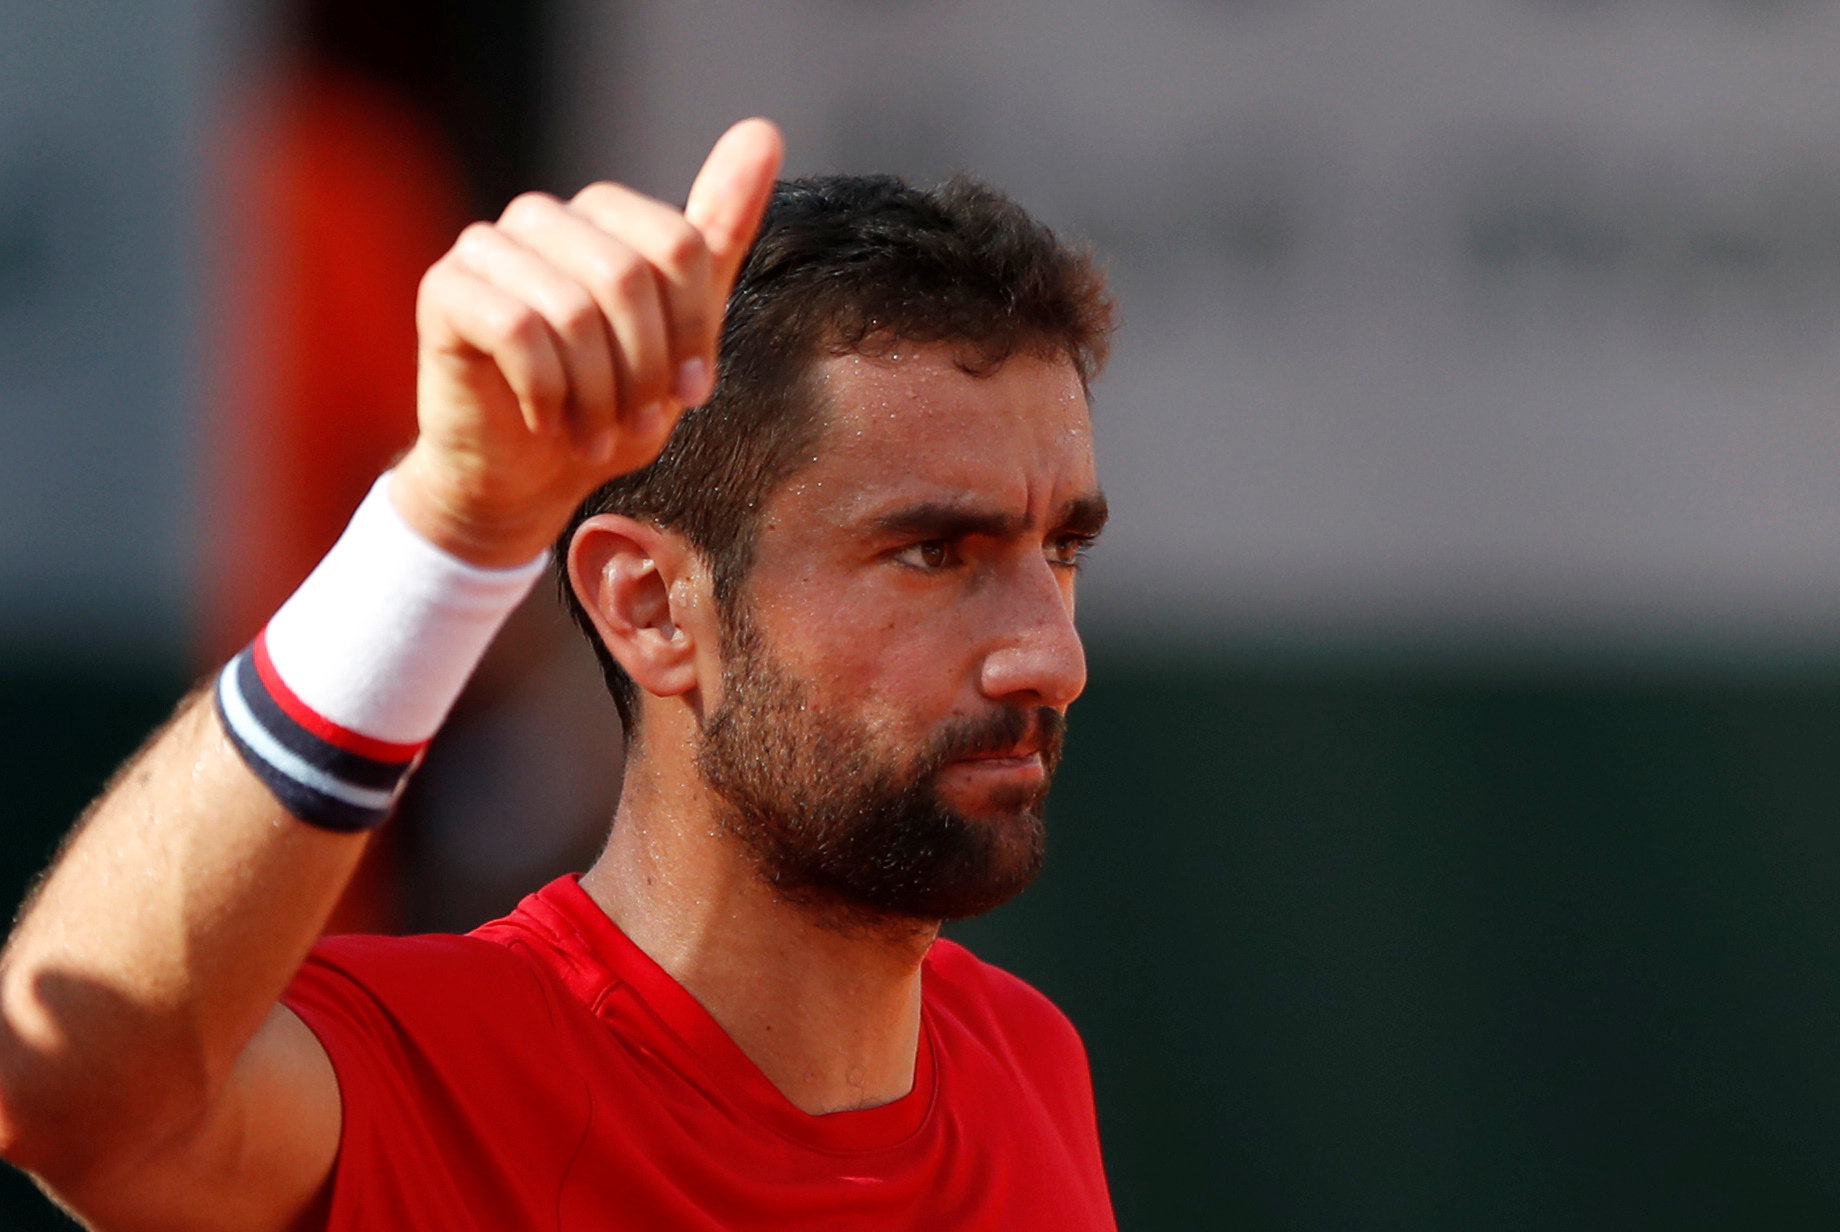 French Open: Cilic canters into fourth round